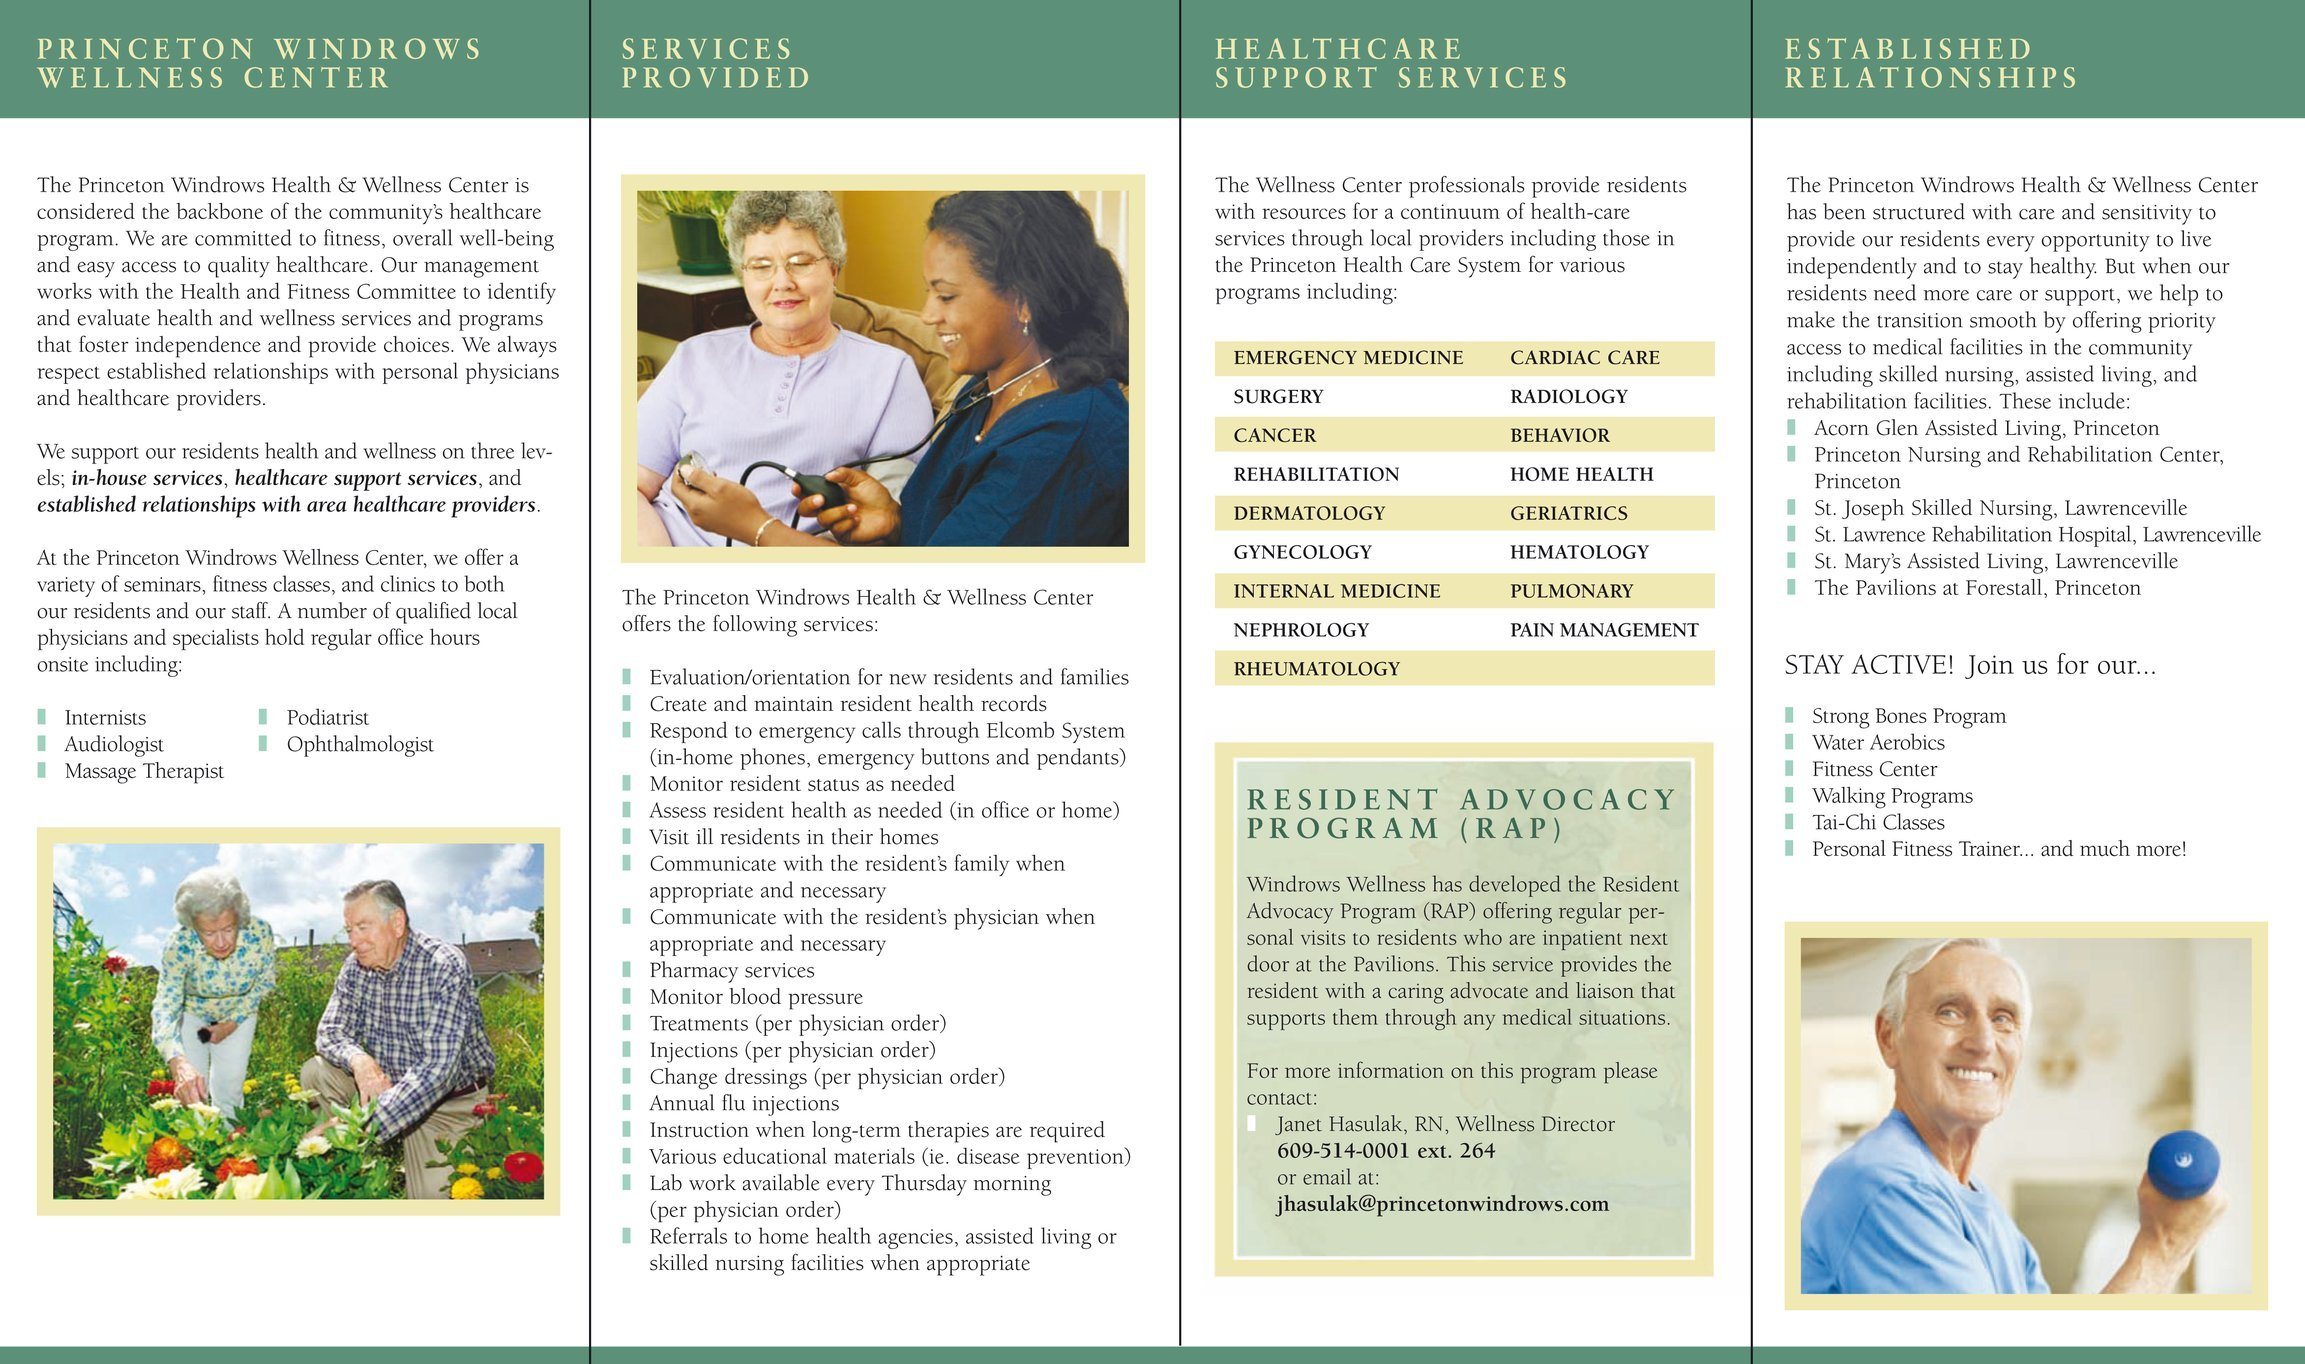 PW_Wellness Brochure-2.jpg